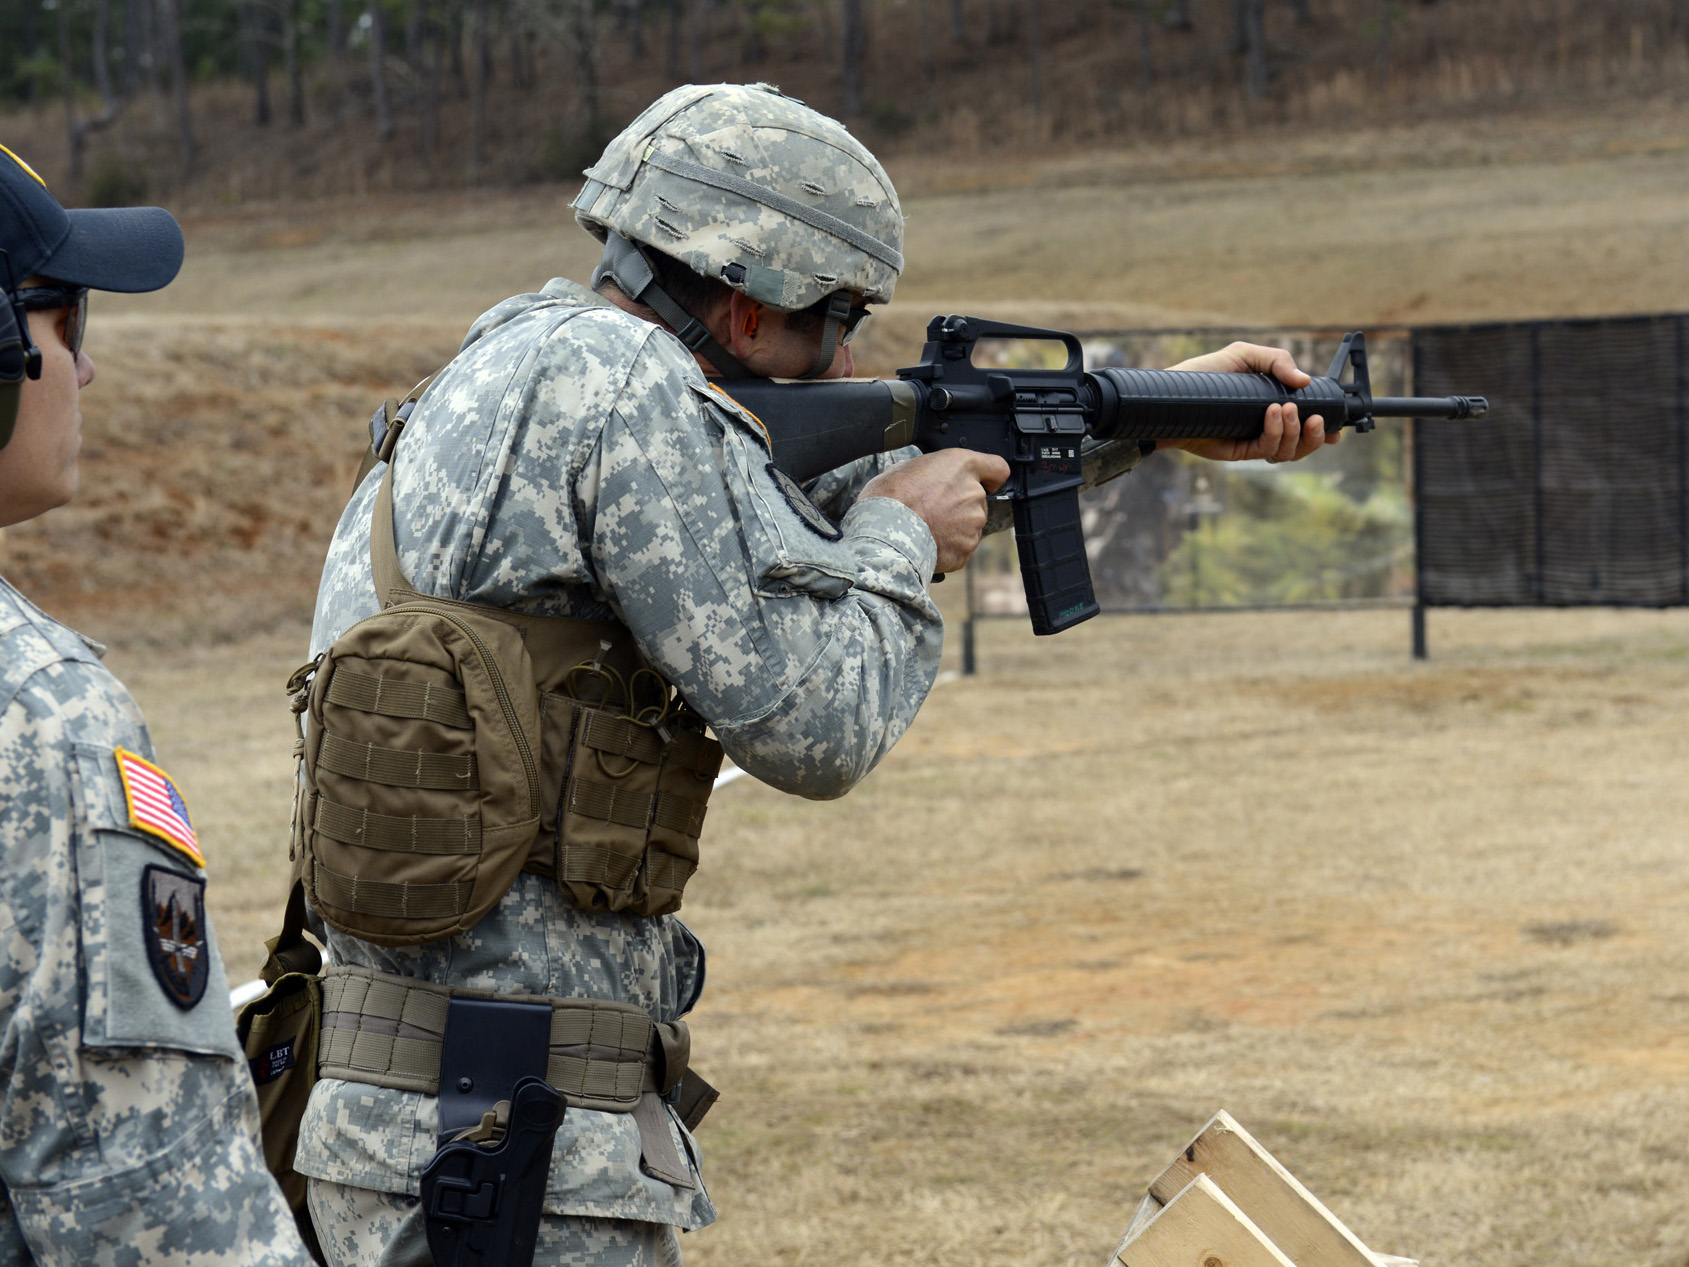 FORT BENNING, Ga. – Army Reservist Master Sgt. Russell Moore (center) fires on a target during the Combined Arms match Feb. 1 at the 2014 U.S. Army Small Arms Championship. Moore held off stiff competition from Soldiers from Active Duty, Army Reserve and National Guard to claim his fifth title at the All-Army. (Photo by Michael Molinaro, USAMU)